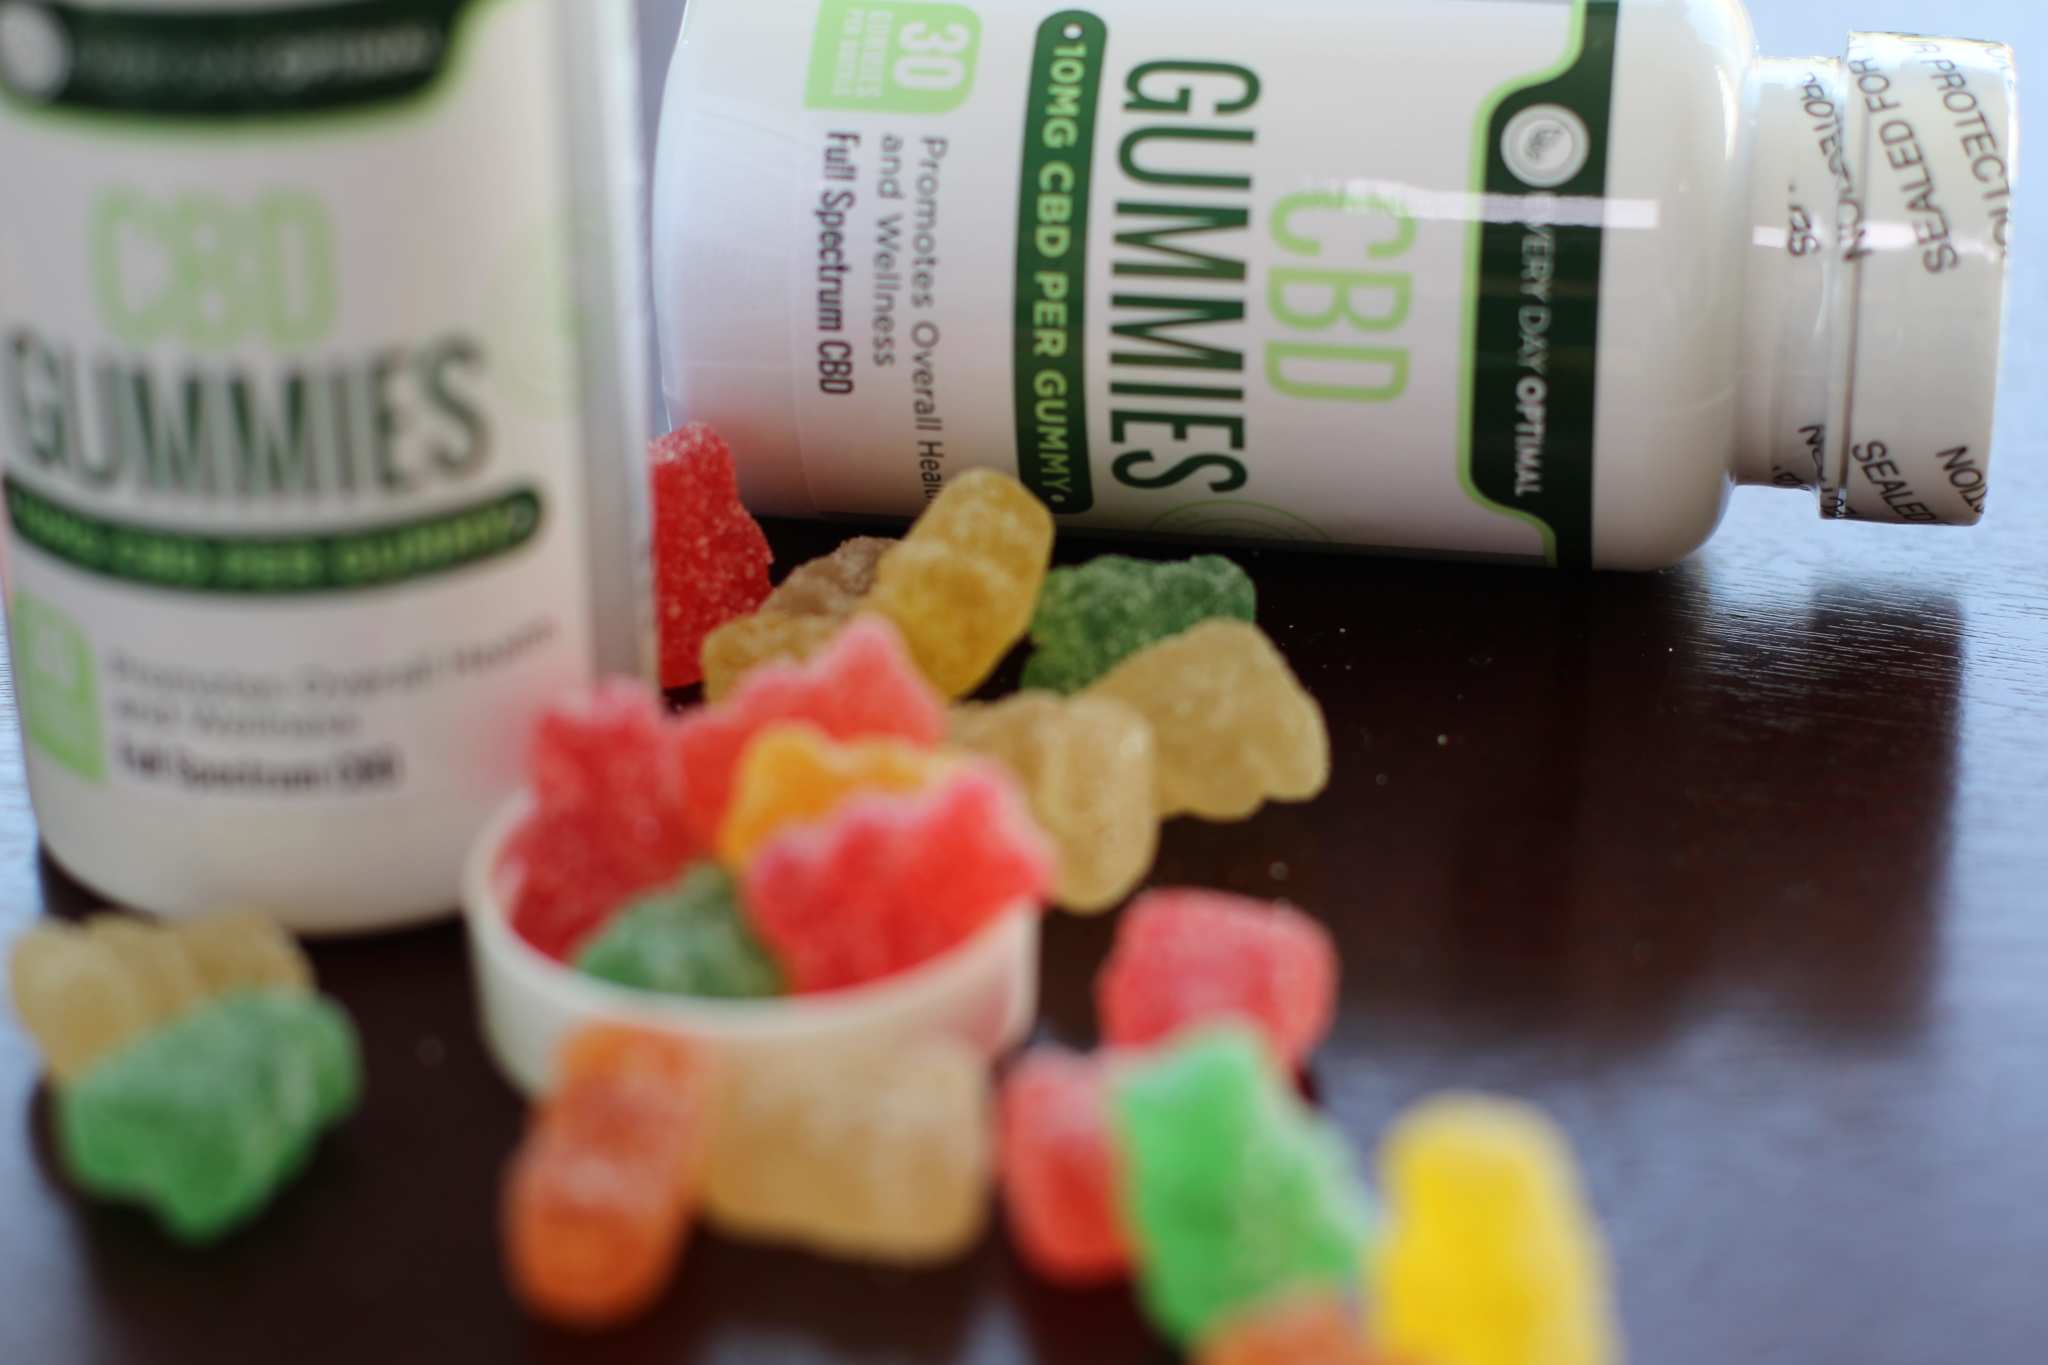 A pile of Every Day Optimal CBD gummies spill from gummy bottle, while another bottle of gummies lies nearby. the cap of a Every Day Optimal CBD gummies, available in 25mg strength, pack potent CBD relief into a delicious sweet & sour candy.